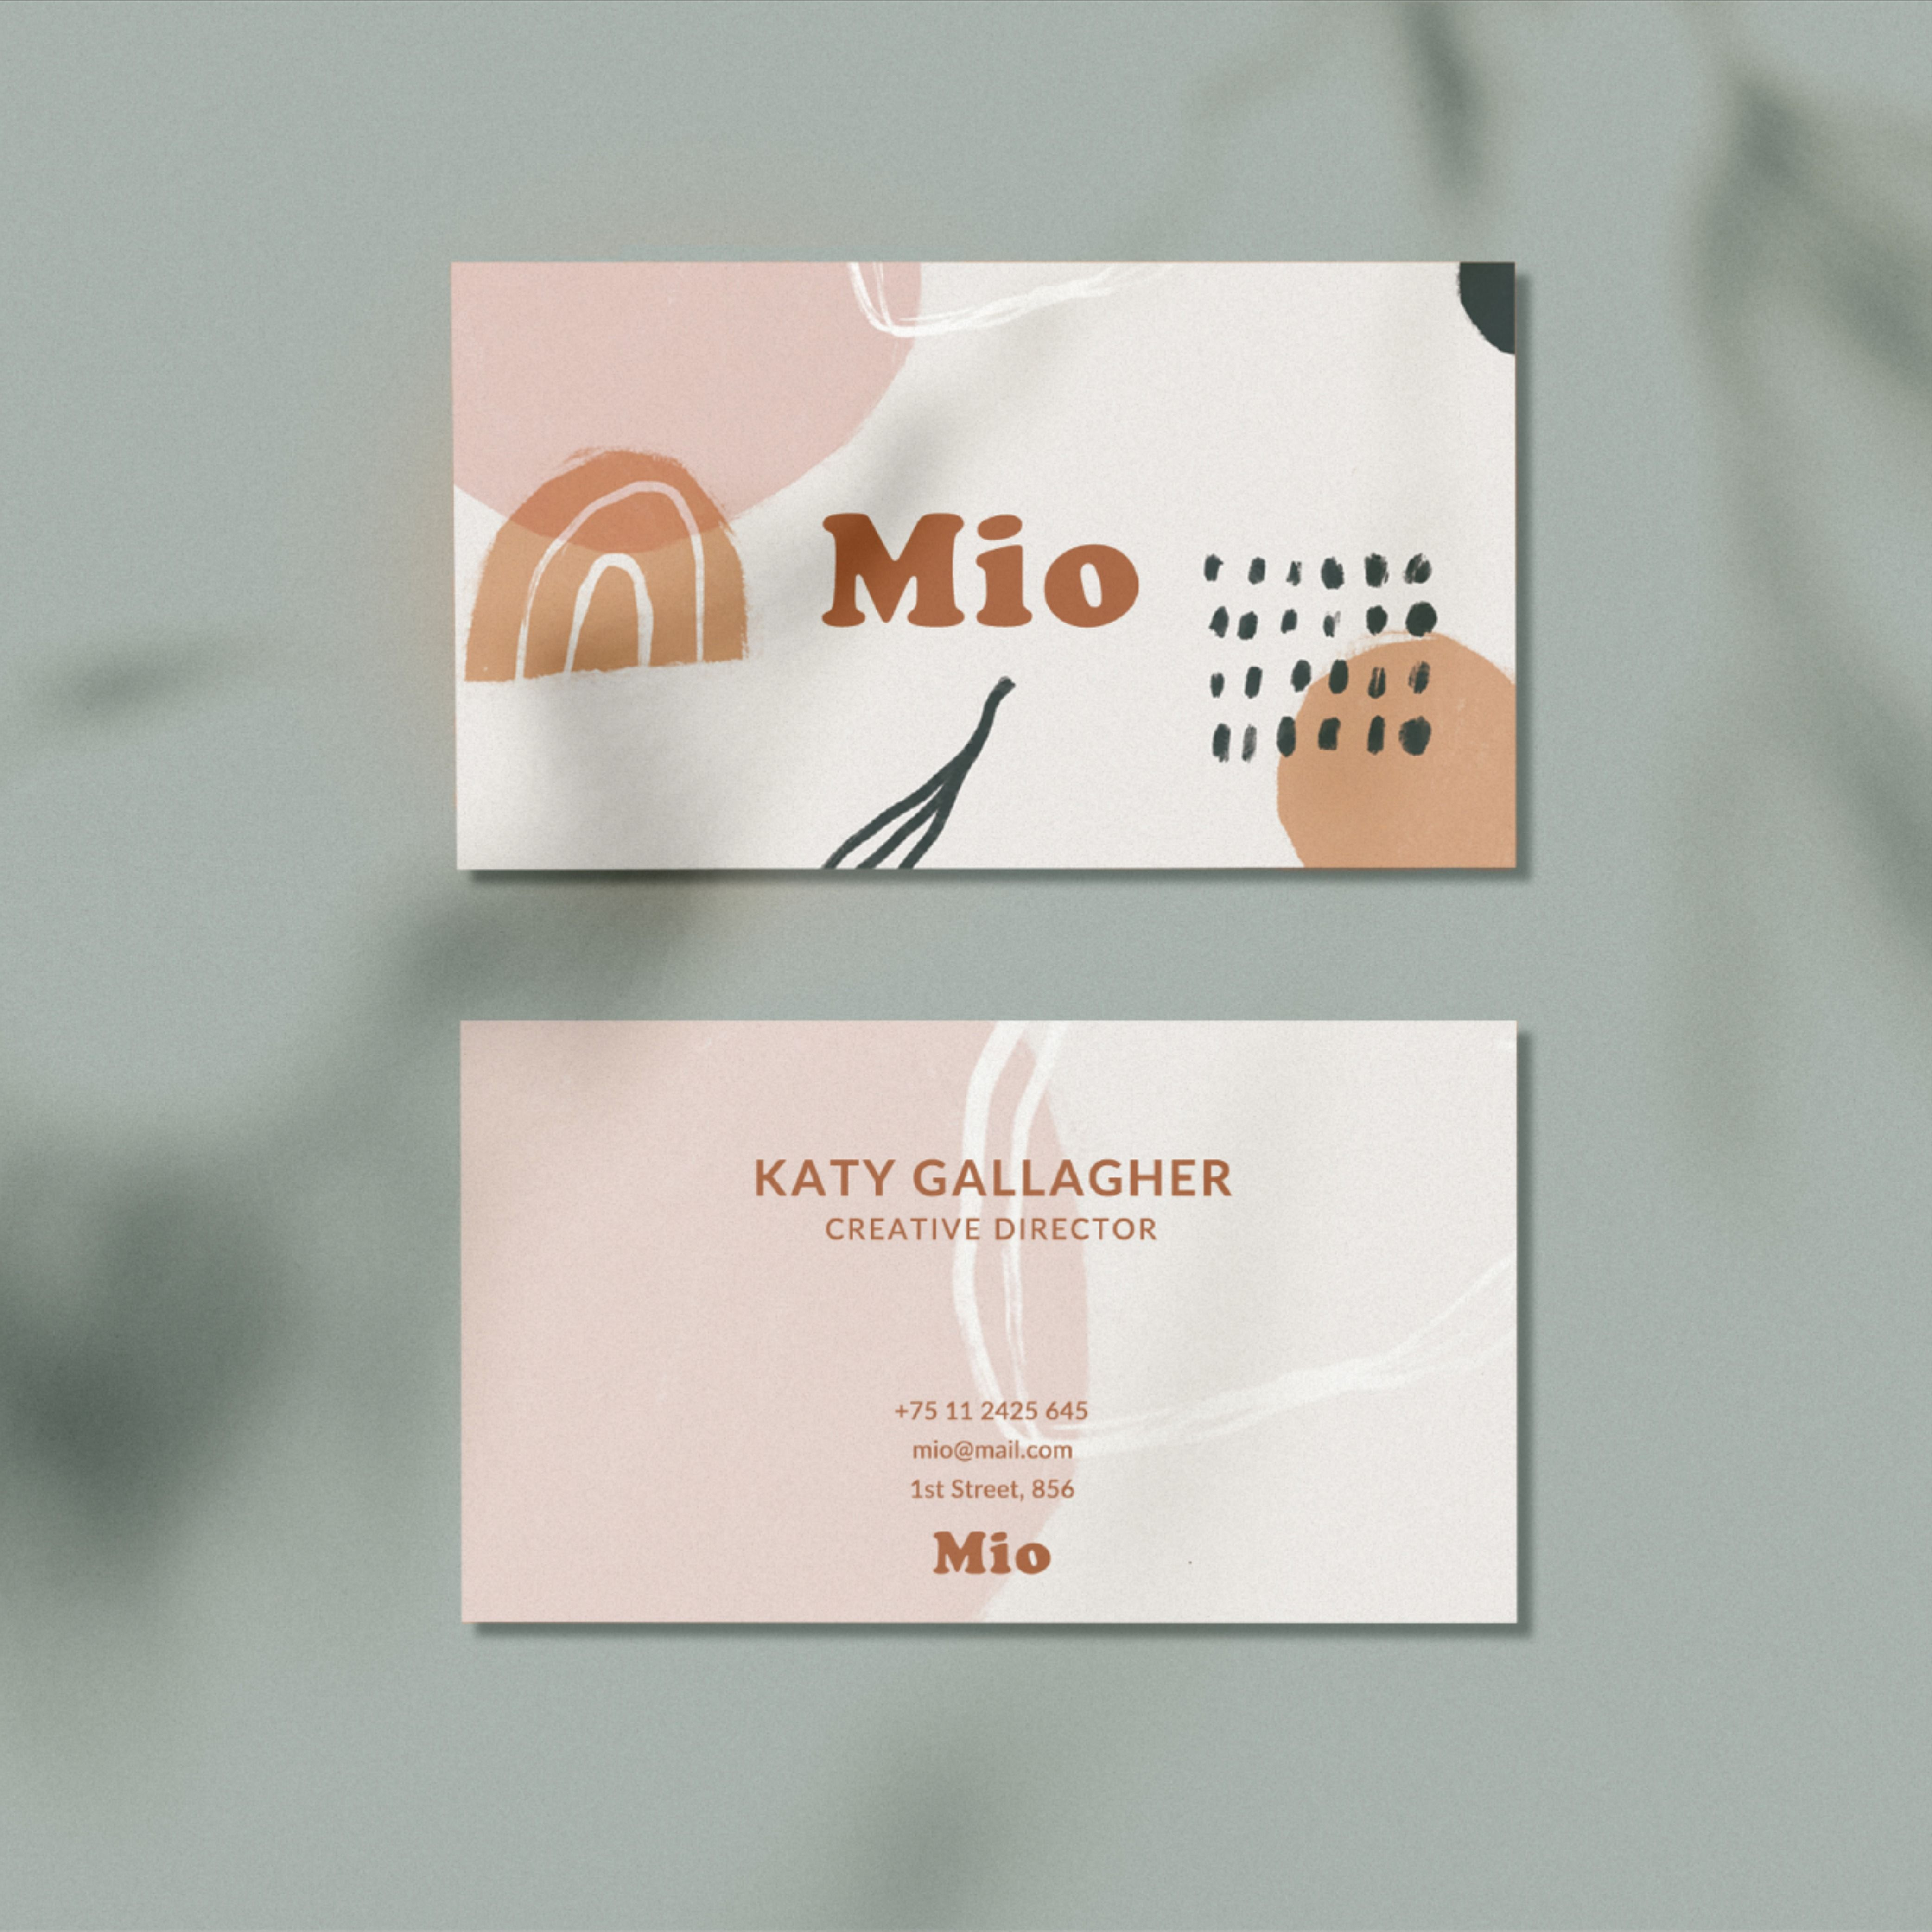 Minimalist Business Card Baby Boutique Business Card Abstract Design Premade Business Card Stylish Stationary Printable Kids Brand Boutique Business Cards Graphic Design Business Card Create Business Cards